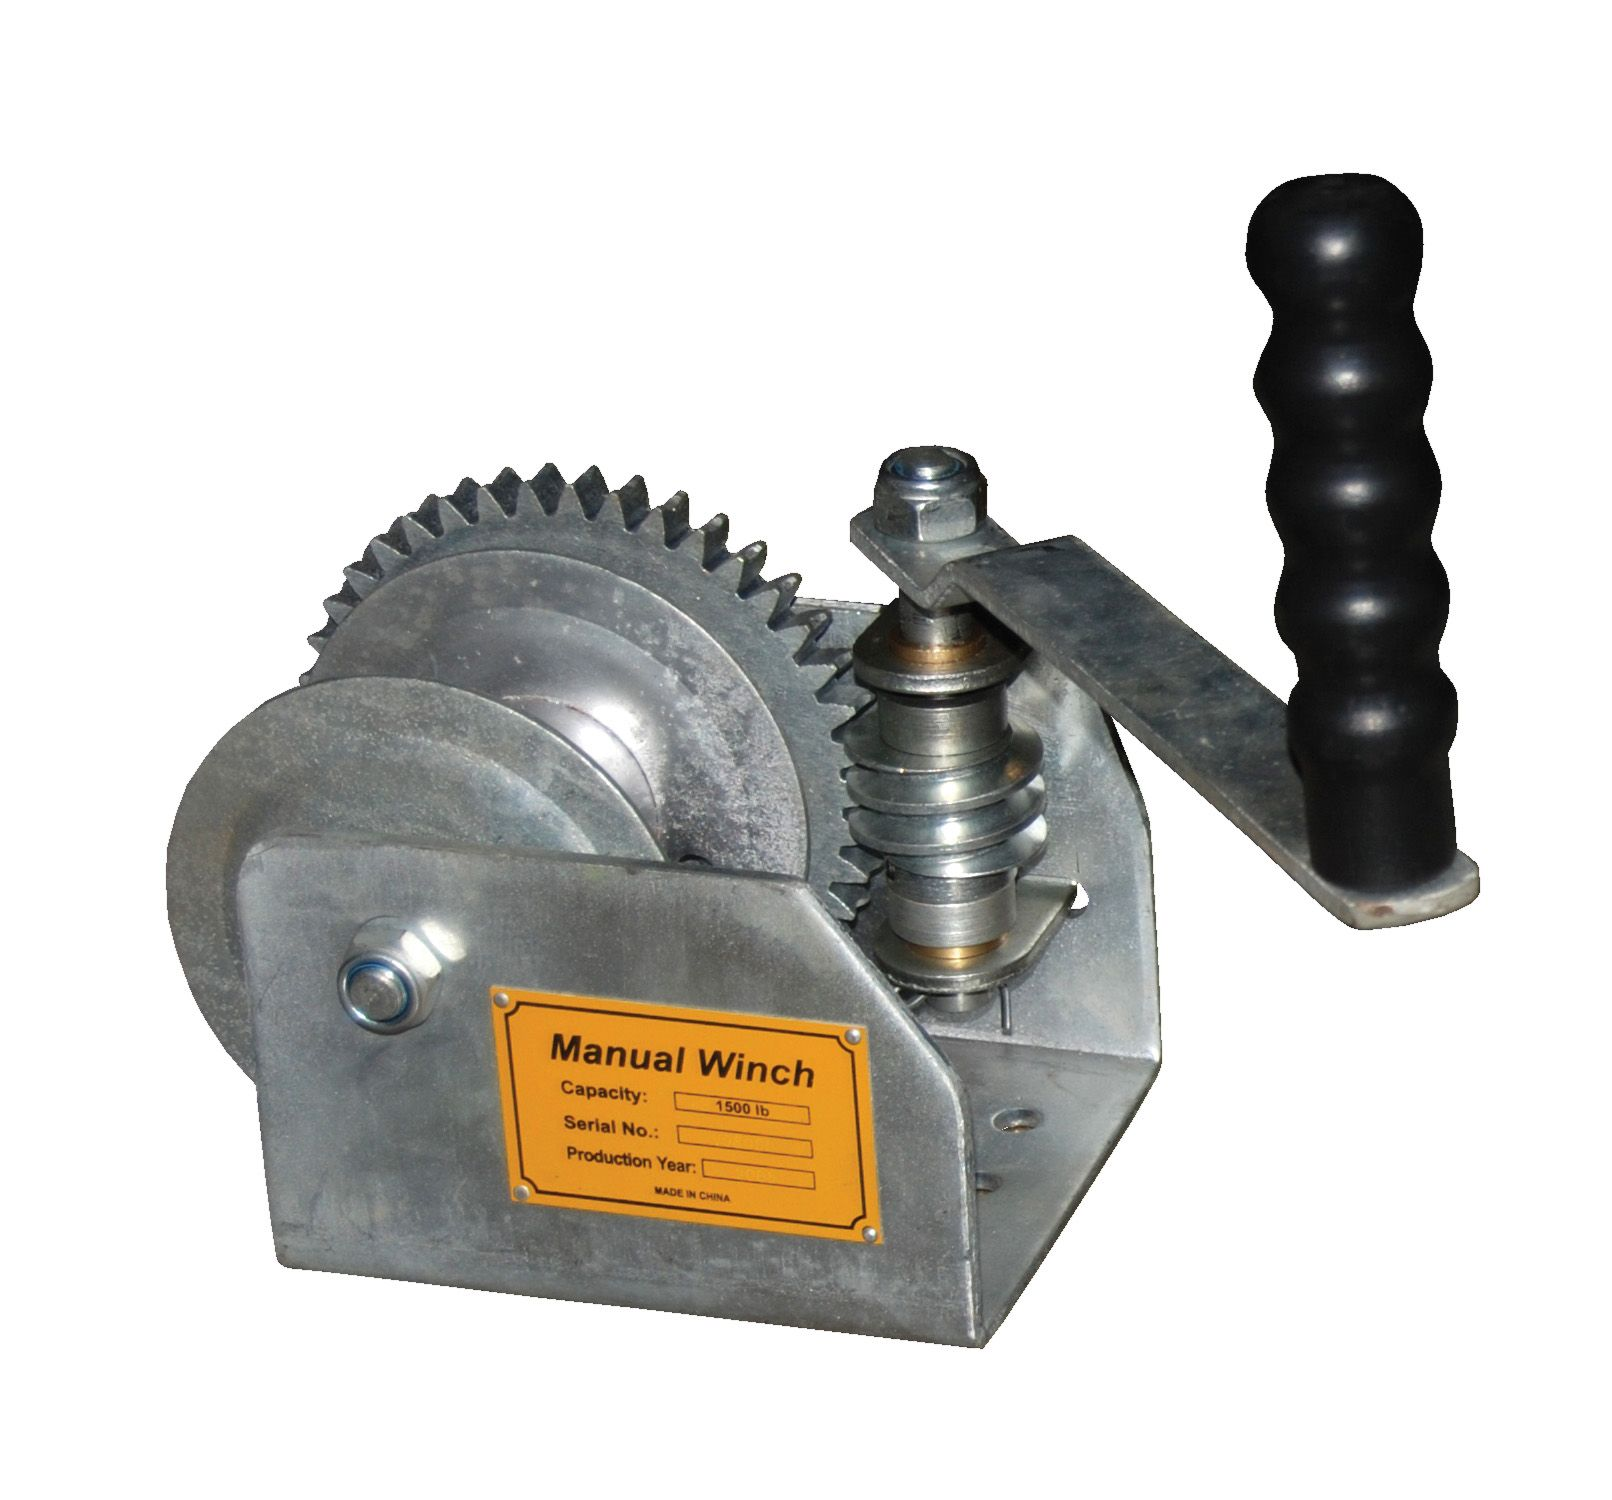 Industrial winches are pulling devices that use a wire, rope, cable ...